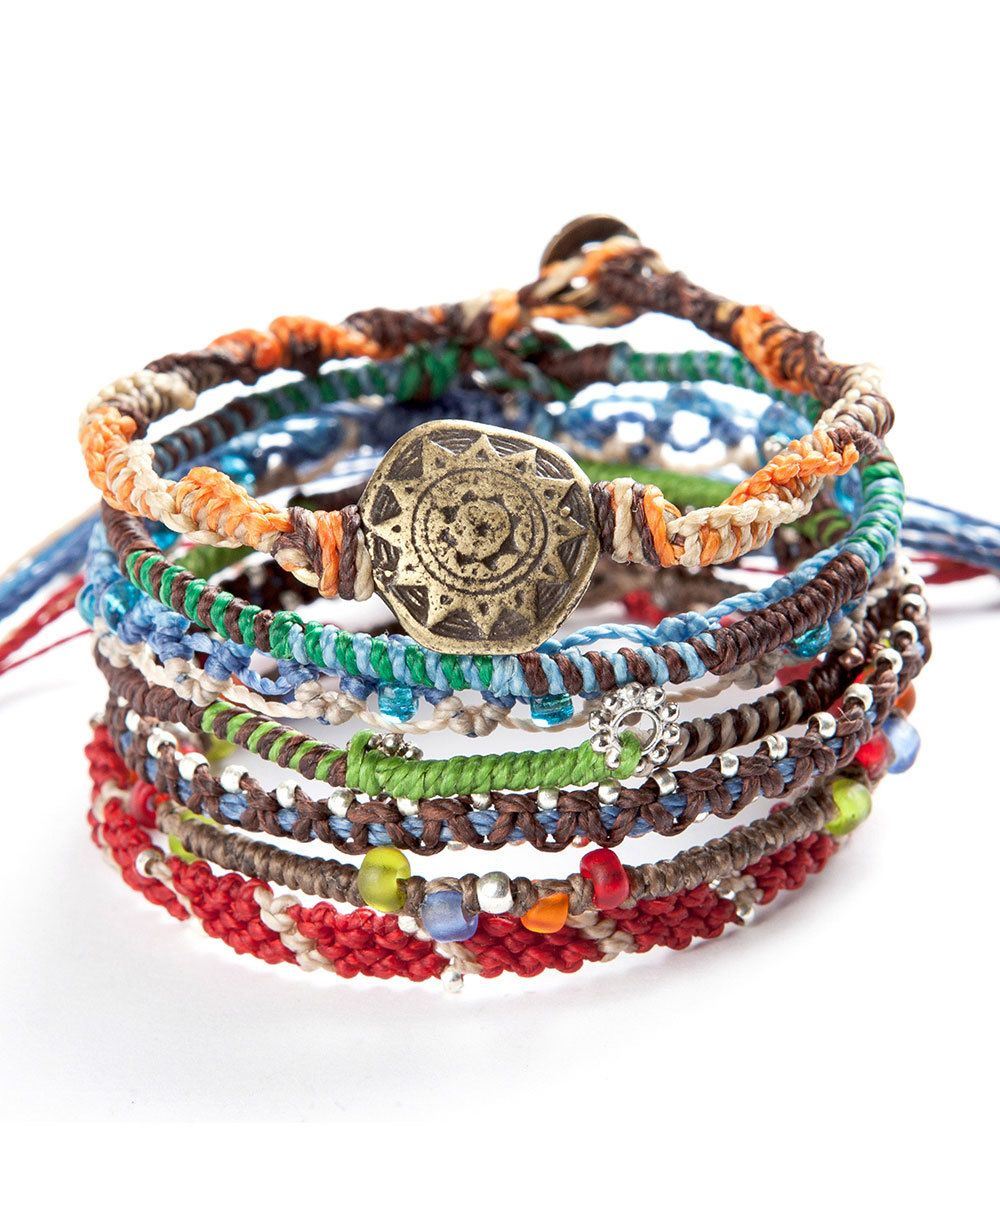 Set of 7 colorful bracelets hand woven by women in Guatemala tells the story of the earth. Fair trade and ethically produced.